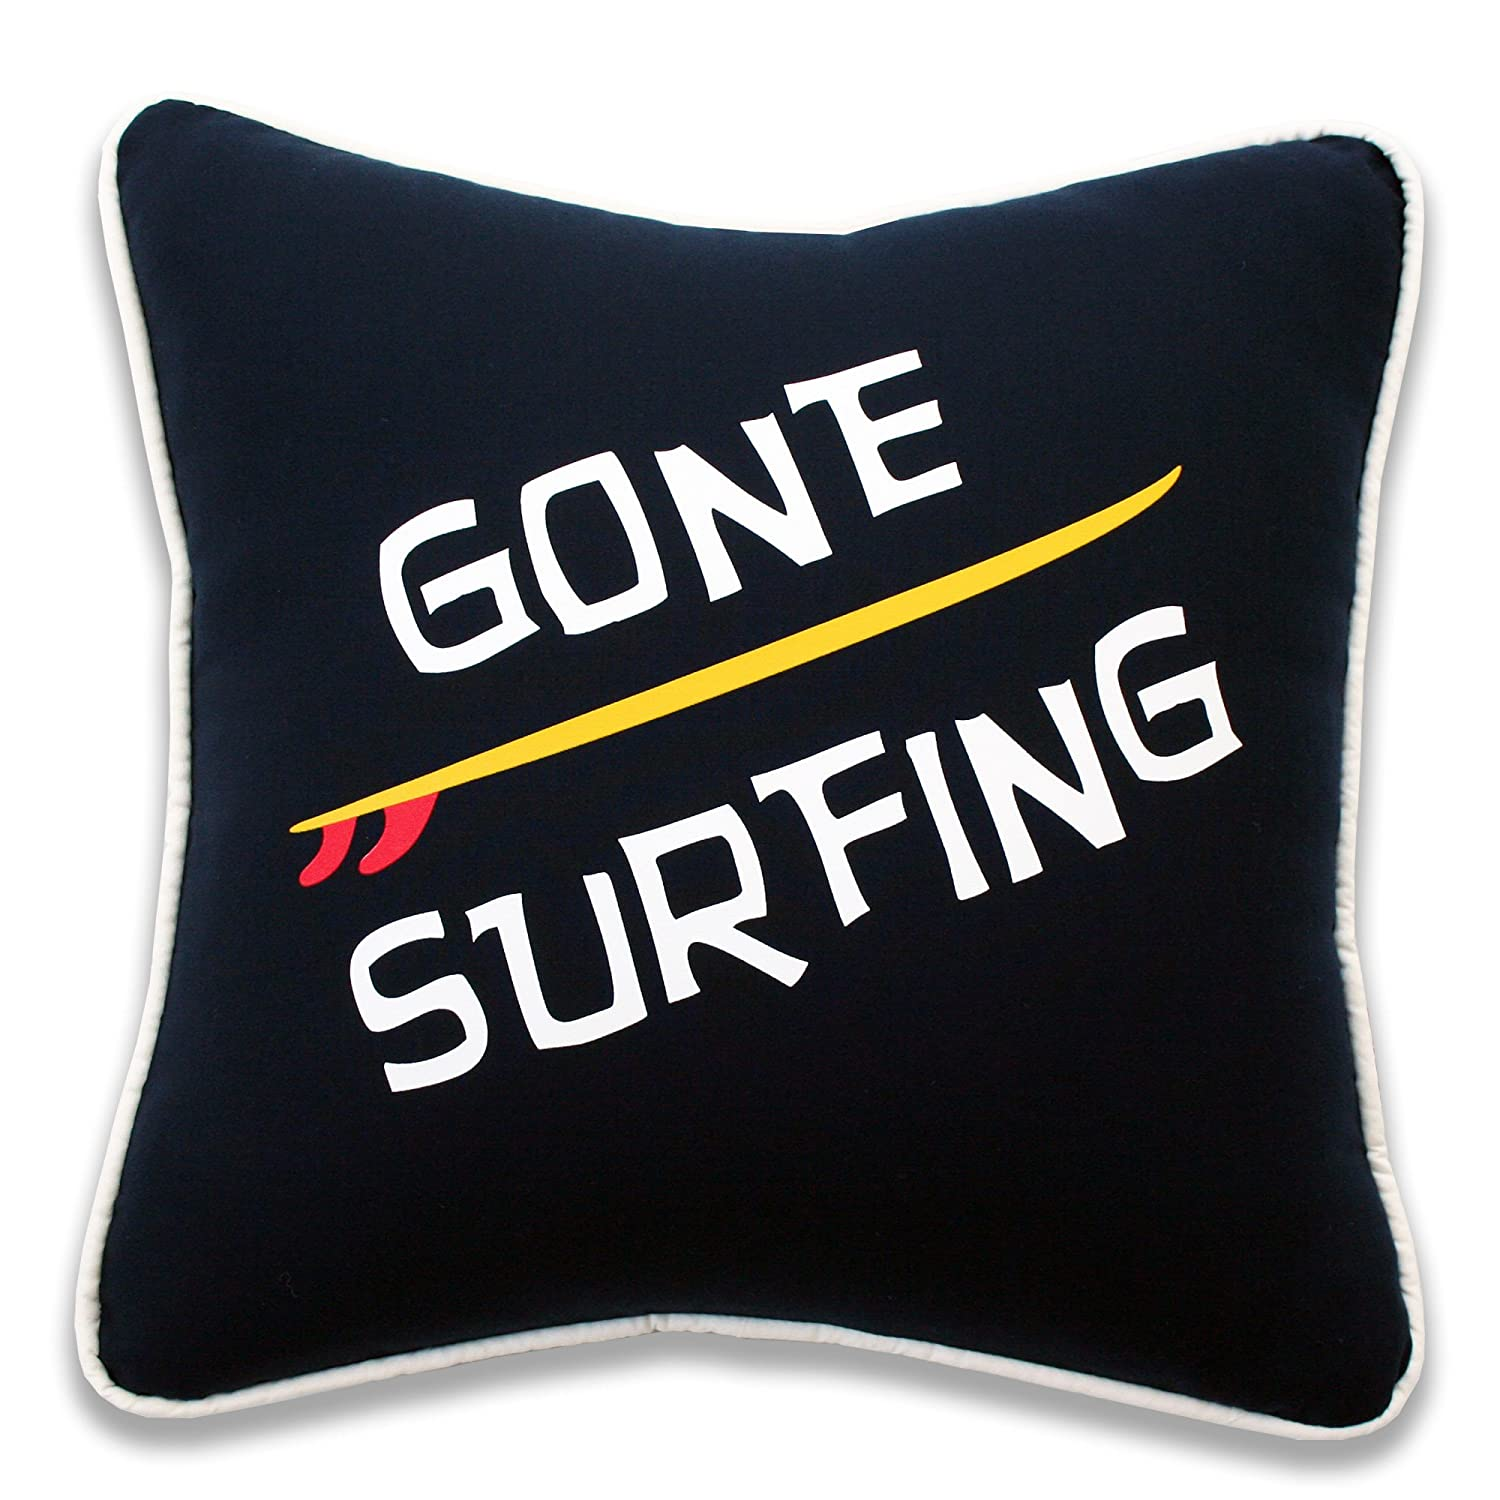 Dean Miller Surf Bedding Gone Surfing Throw Pillow